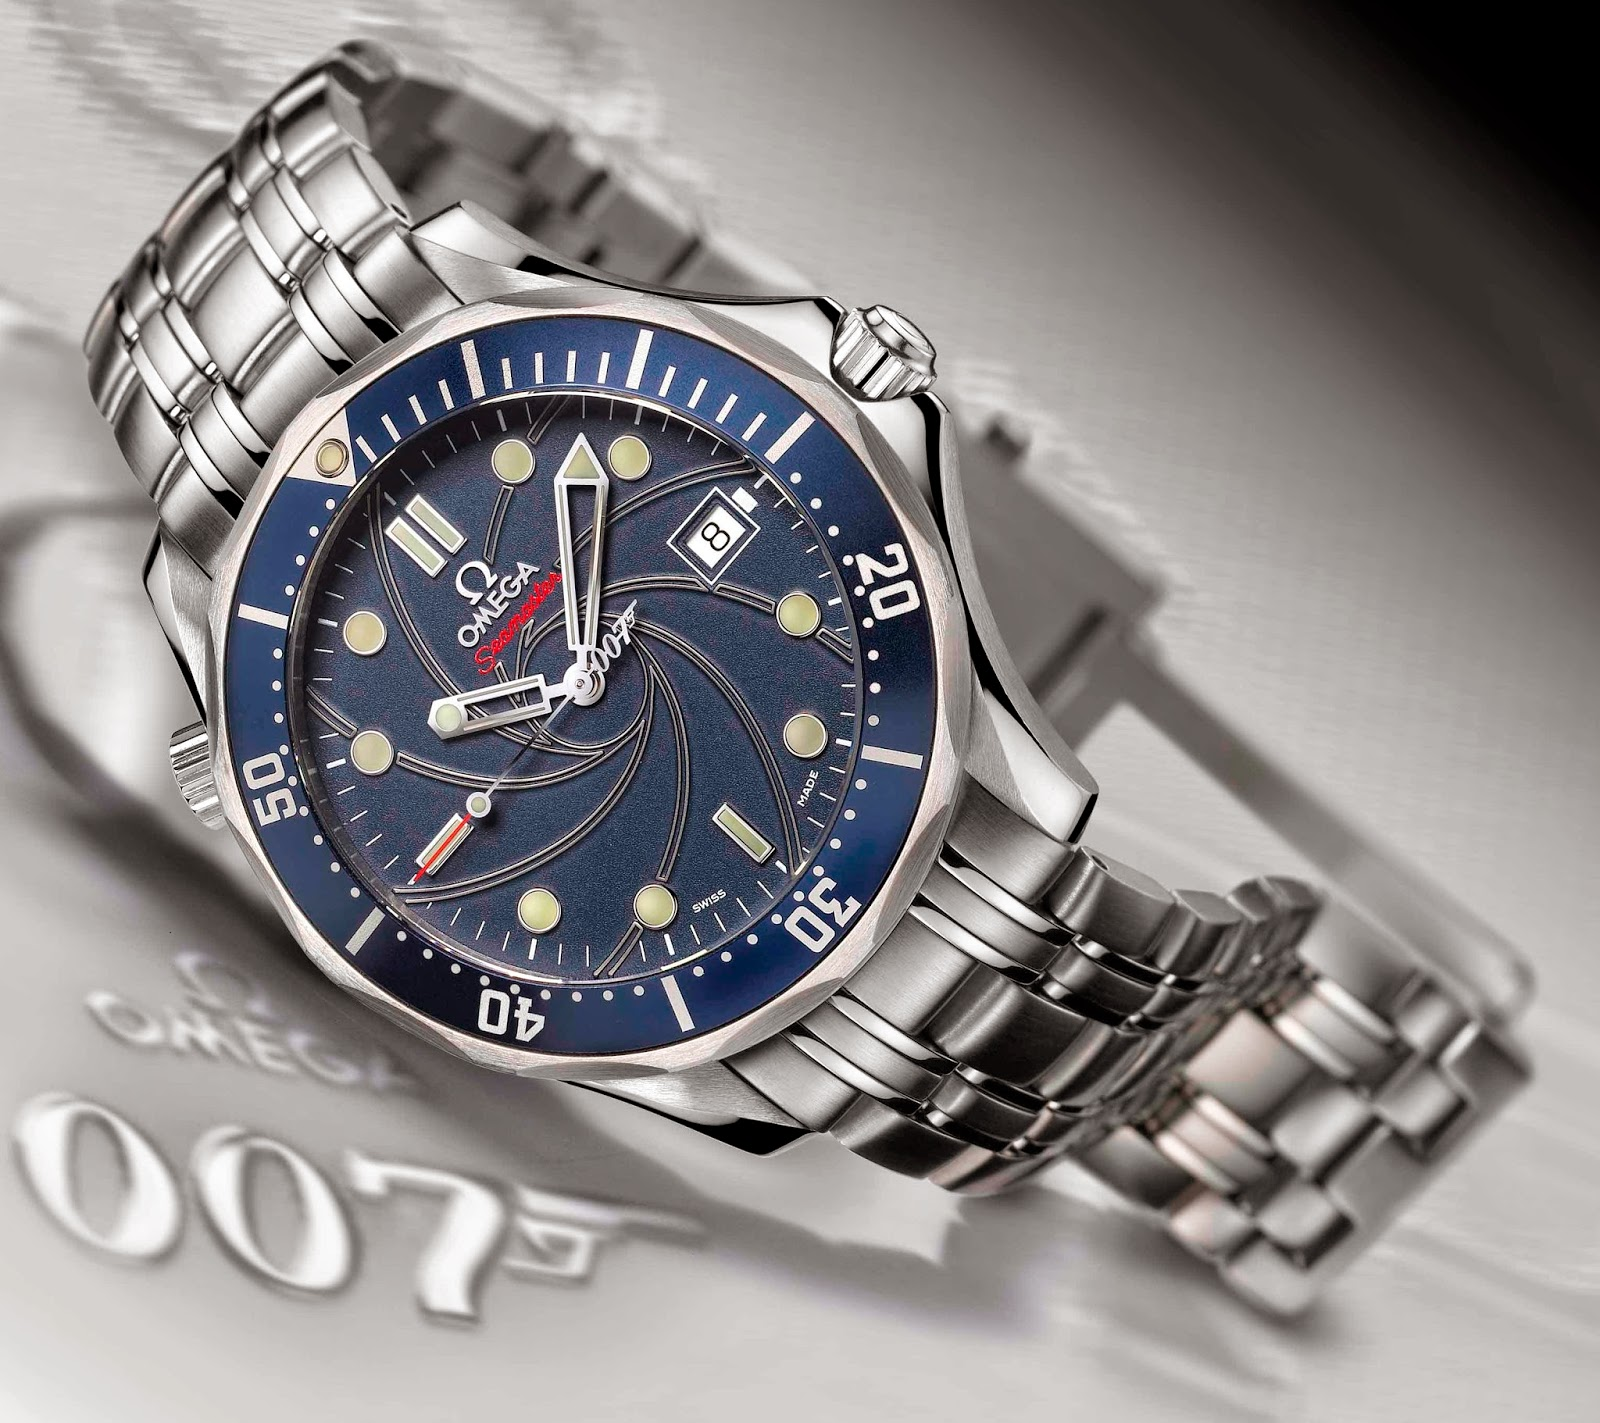 Omega Seamaster James Bond watch replica